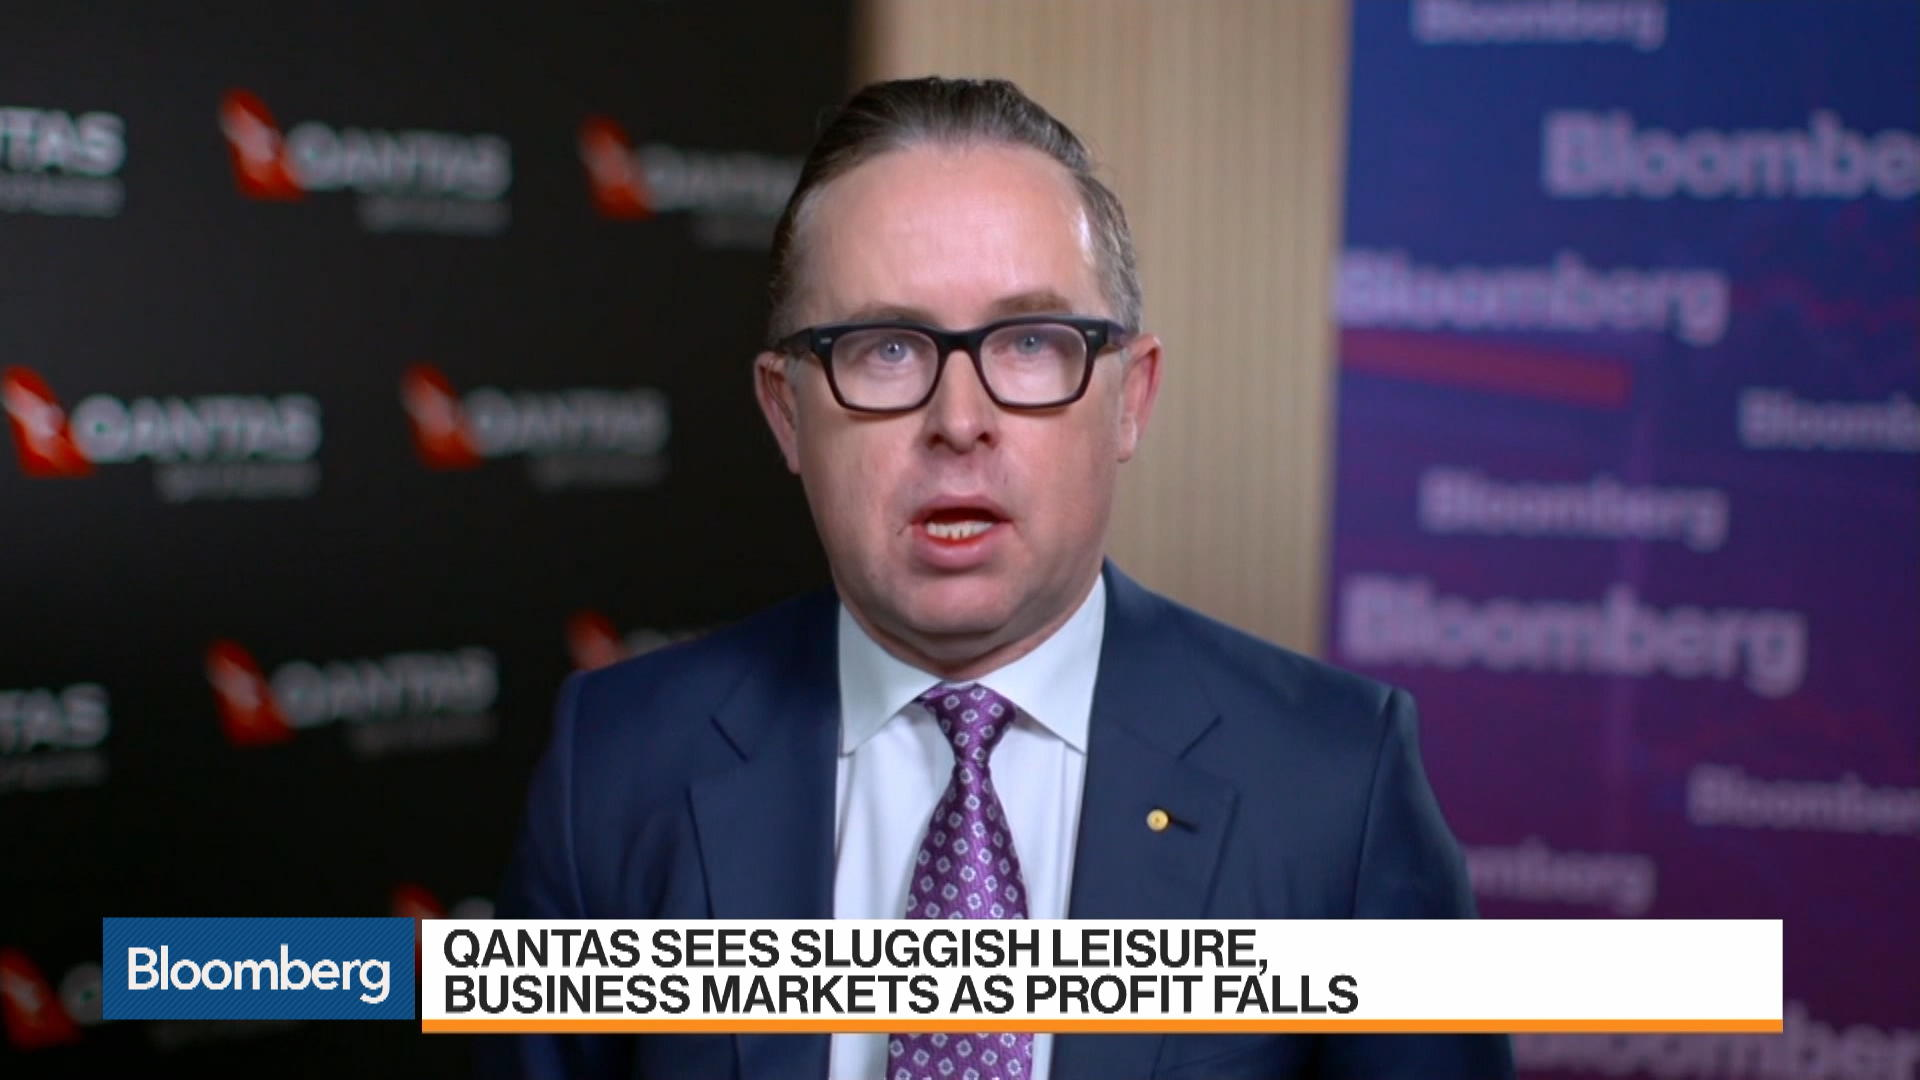 Hong Ceo Kong Group On EarningsDemand FlightsProject Alan Joyce For Qantas Sunshine FJcKTl13